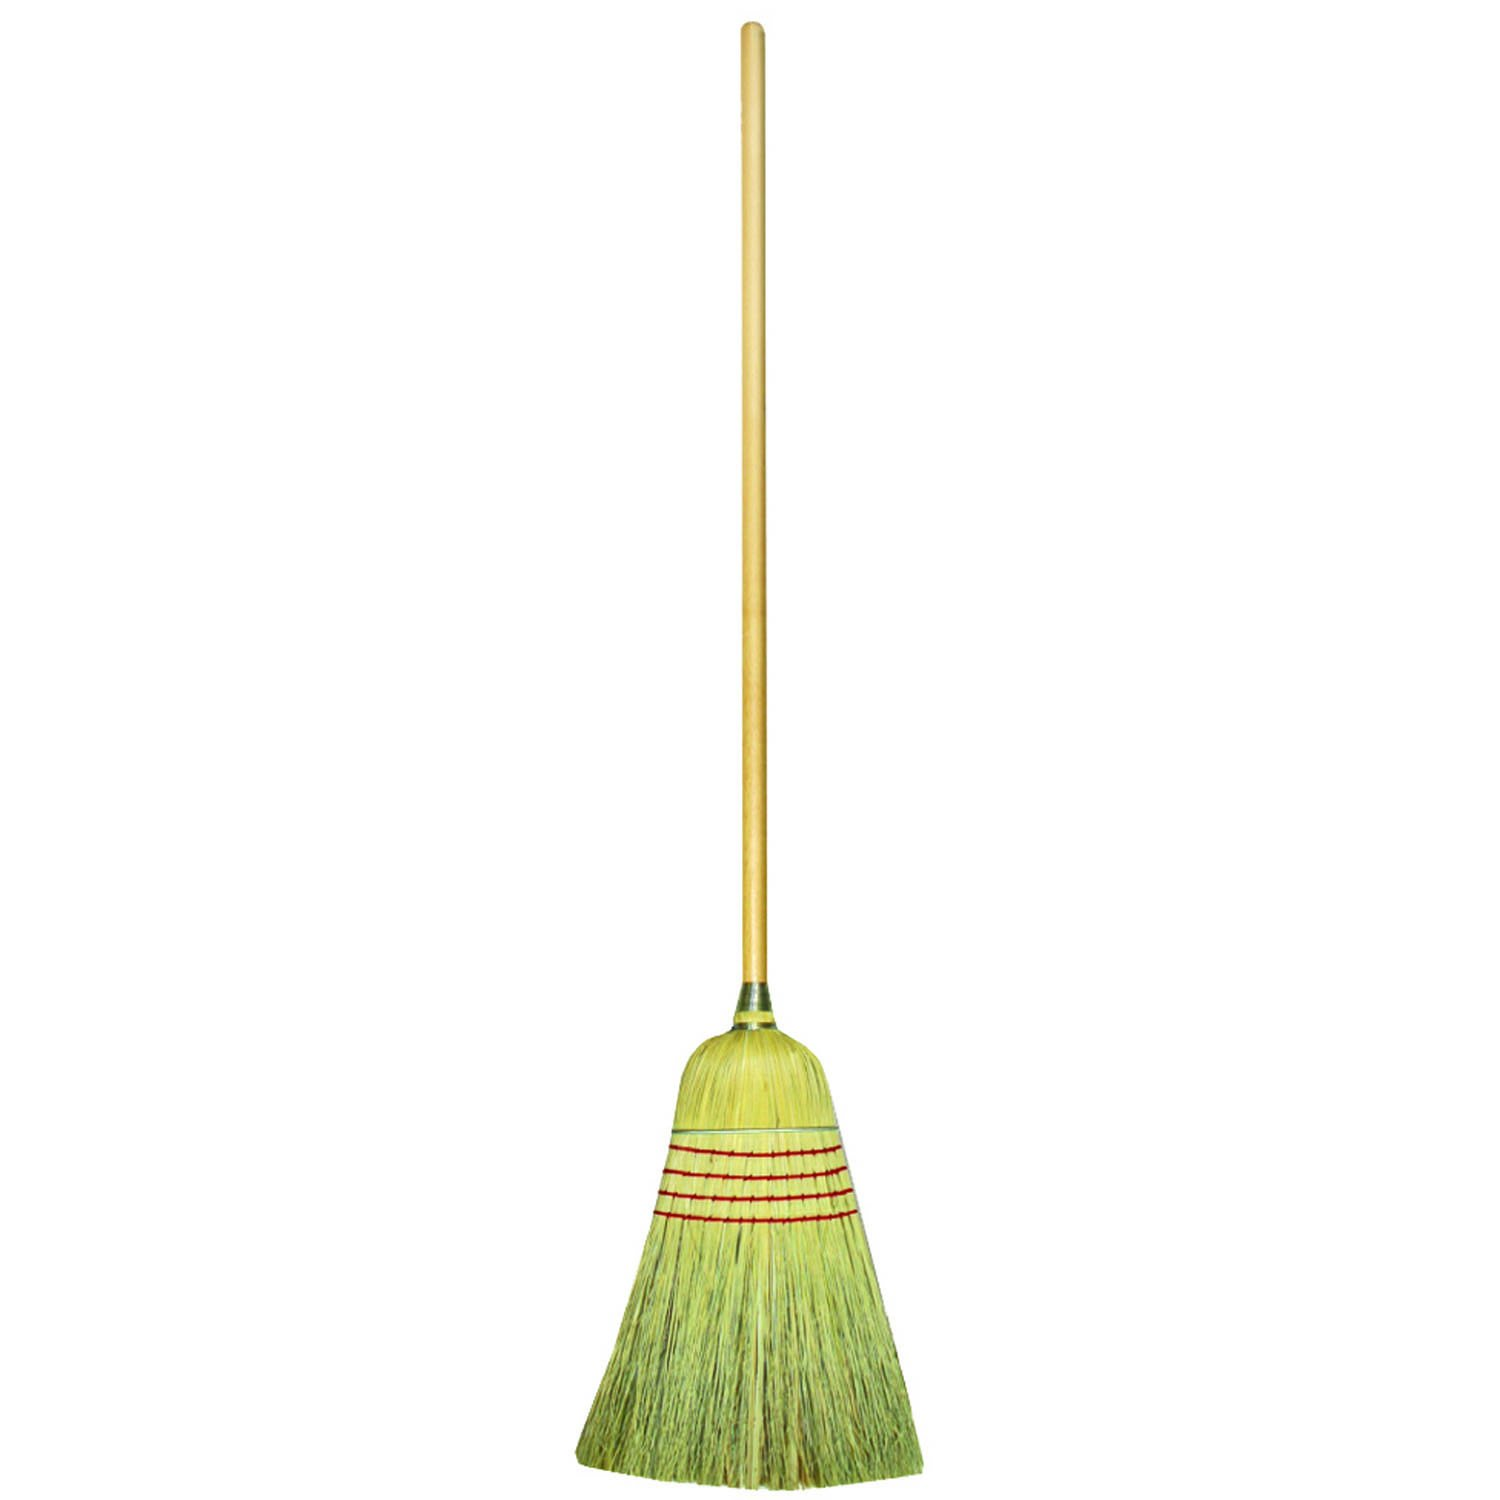 S M Arnold Small Broom Cleaning Supplies SPIG **Do NOT activate** SMA92416